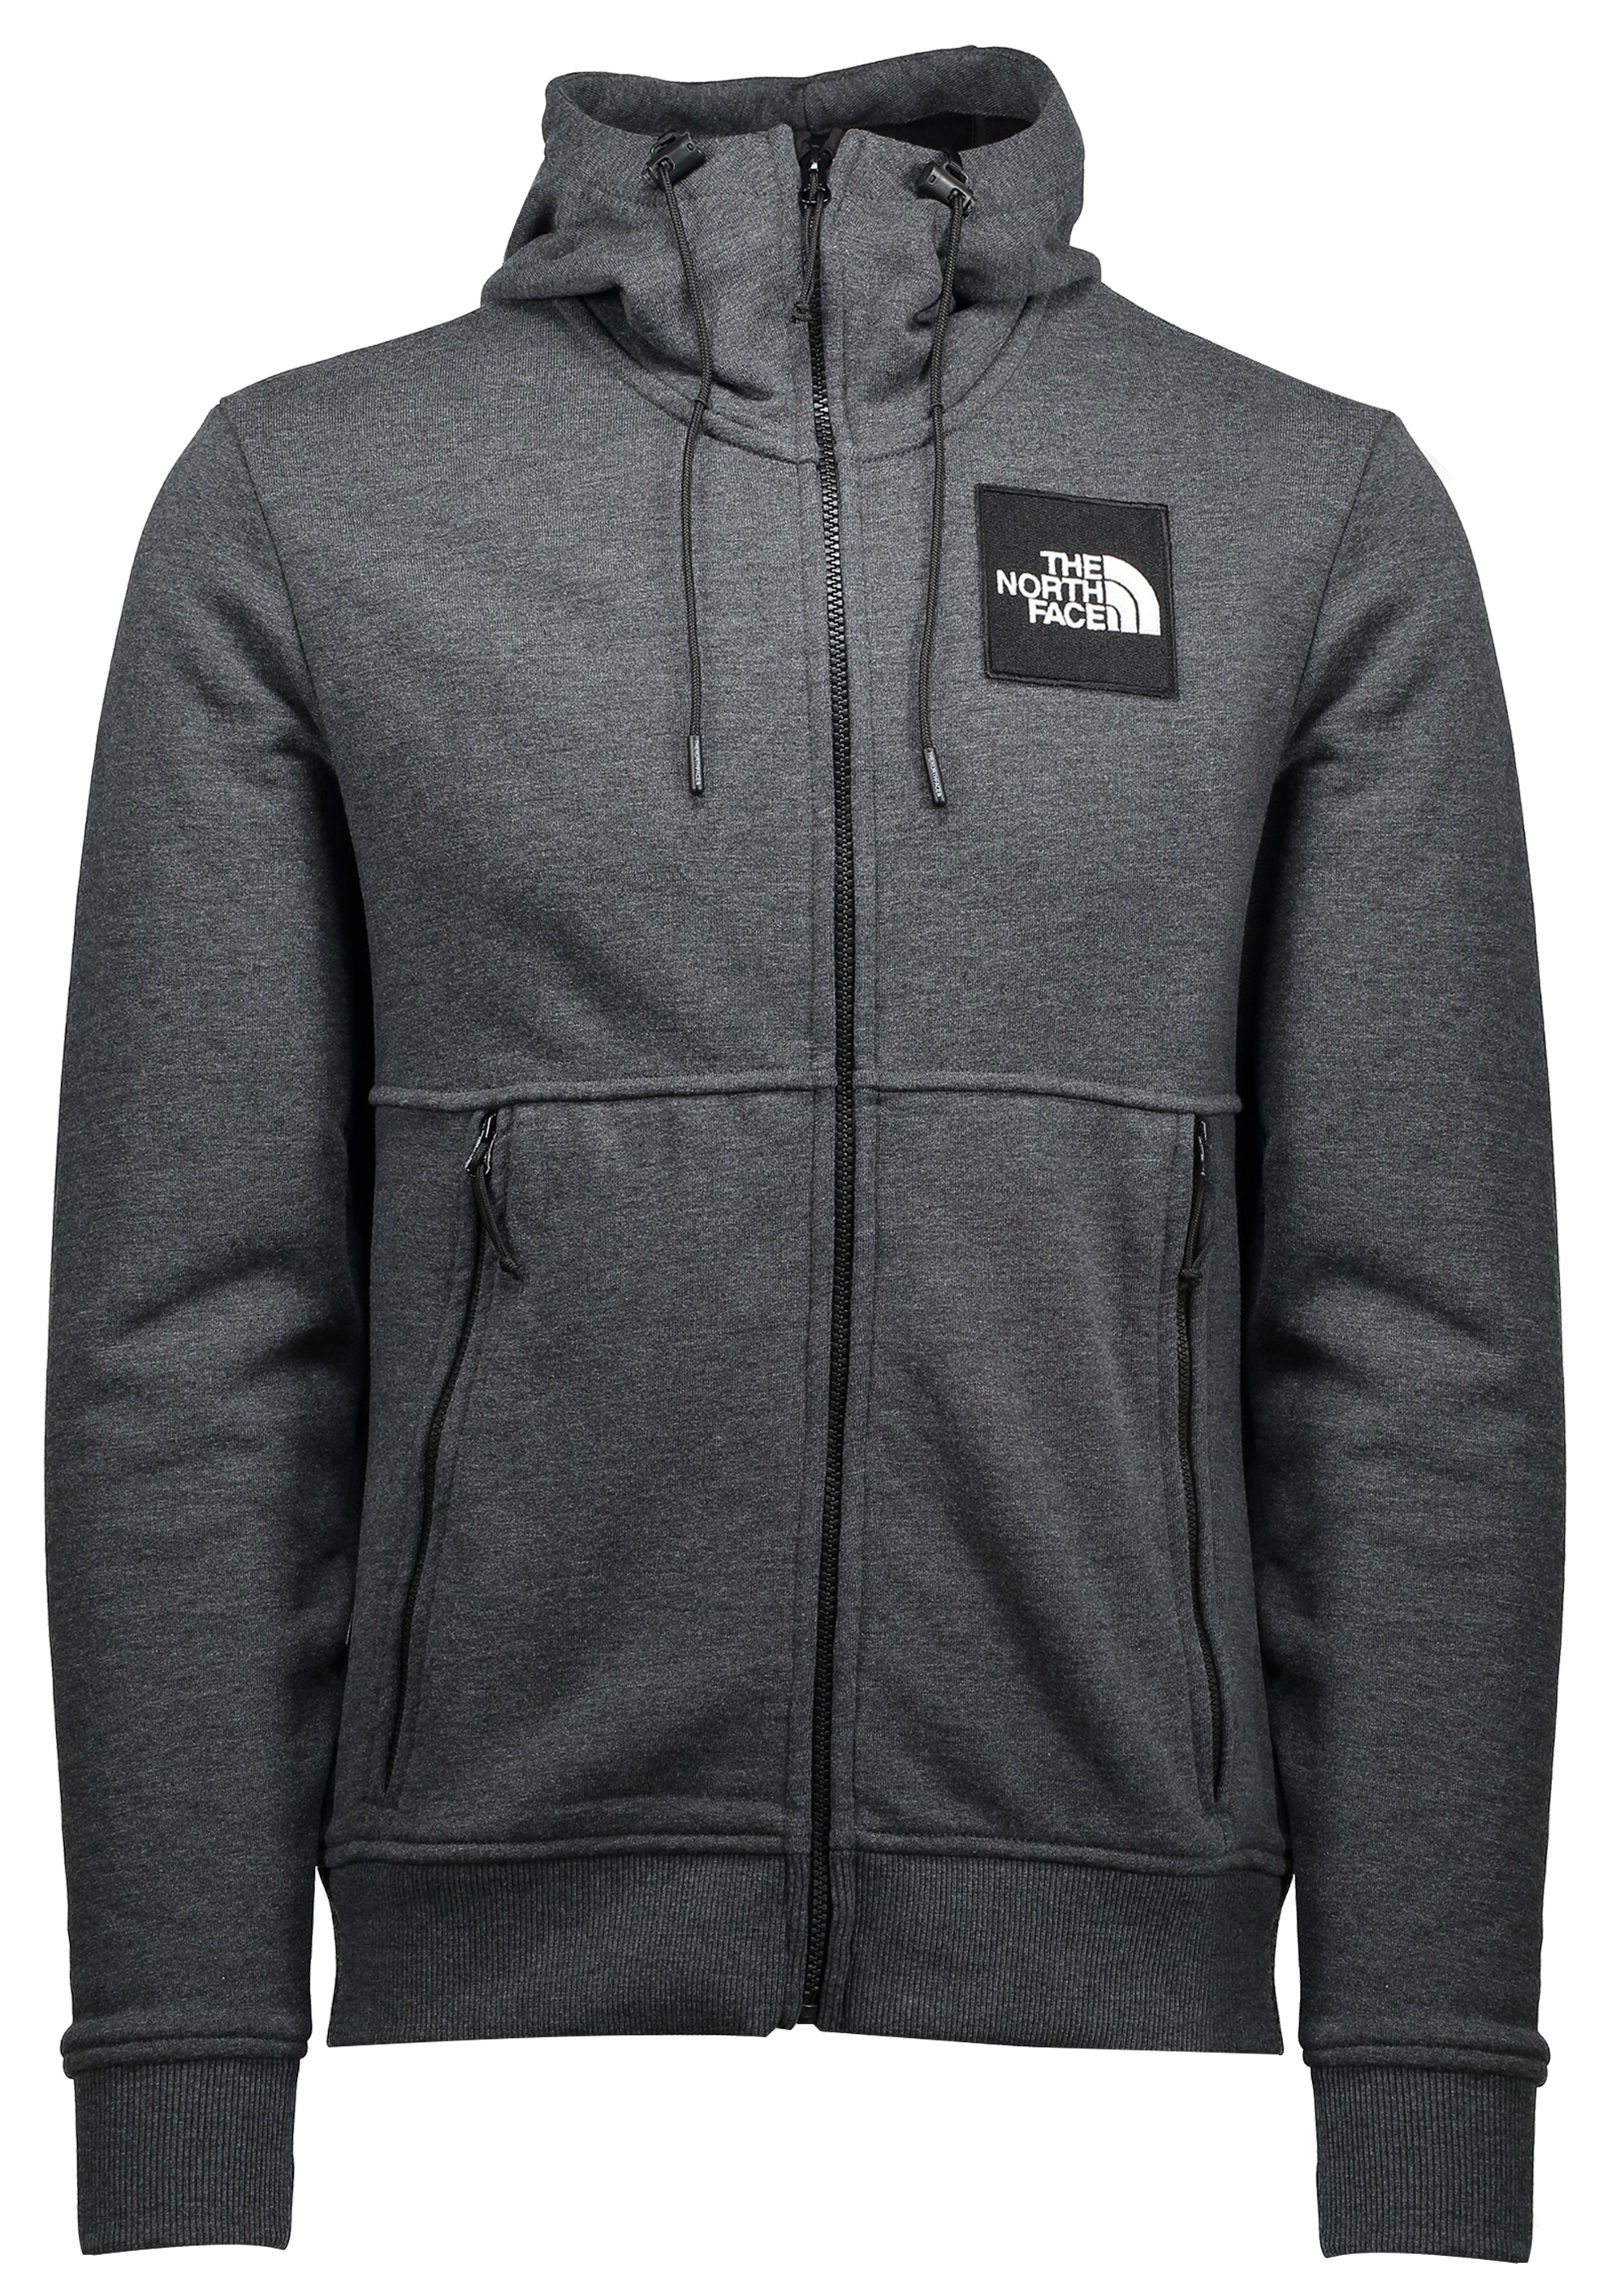 0f93f2b59 The North Face Fine Full Zip Hoodie - Dark Grey - Triads Mens from ...